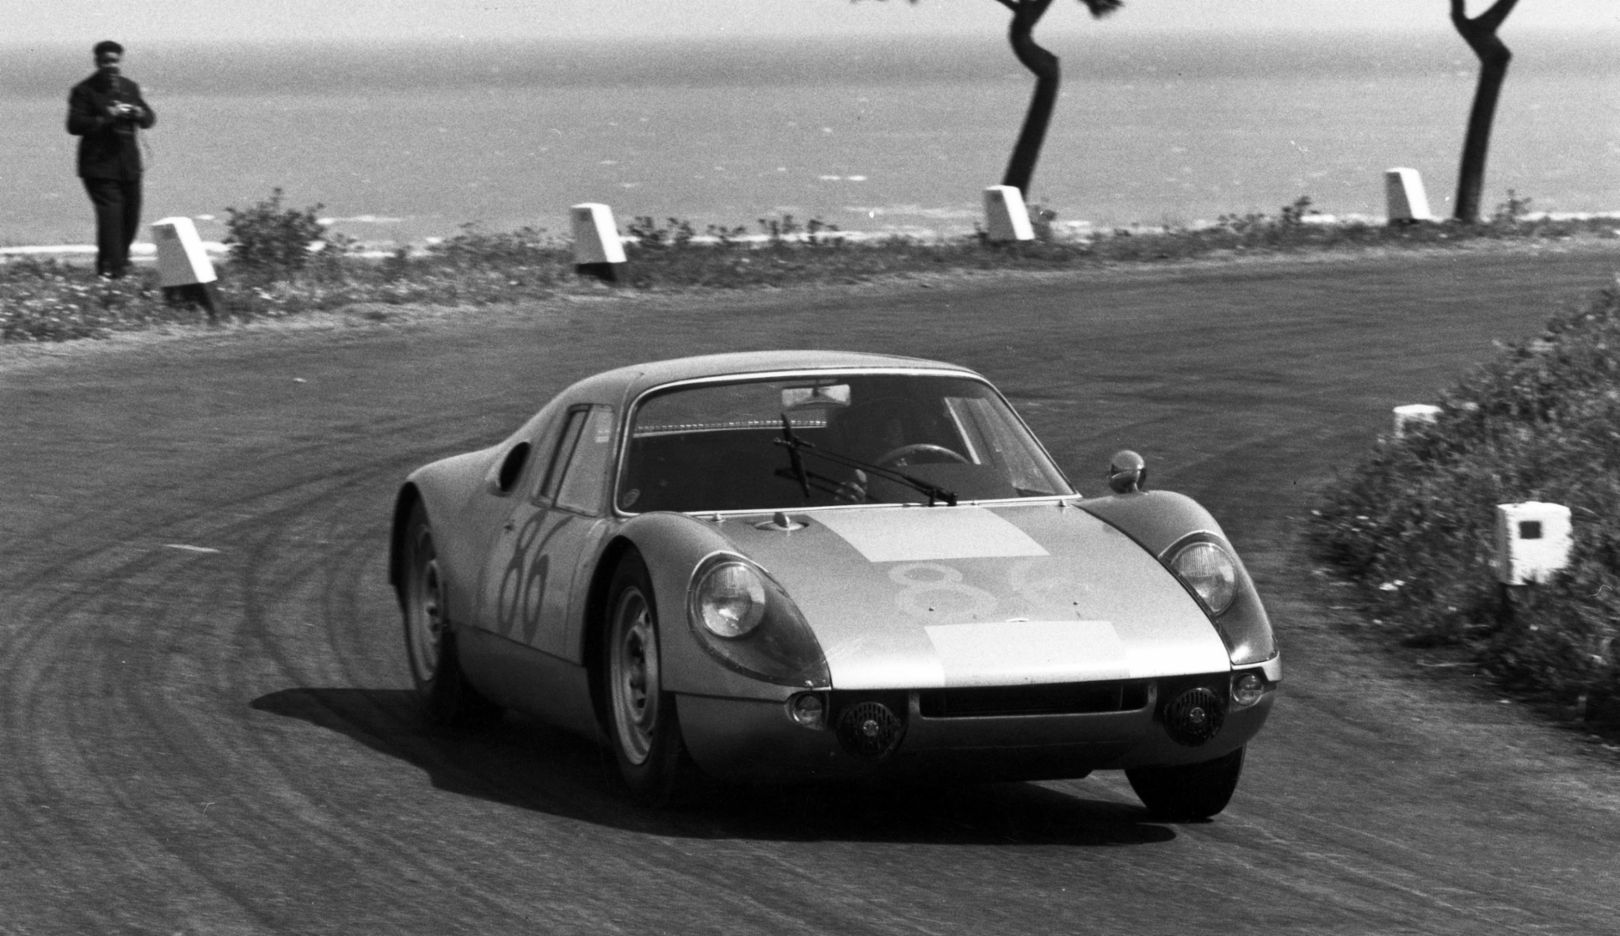 In the 1964 Targa Florio, the race car with the number 86 made it to the top of the overall ranking. The winners sitting inside were Colin Davis und Baron Antonio Pucci.